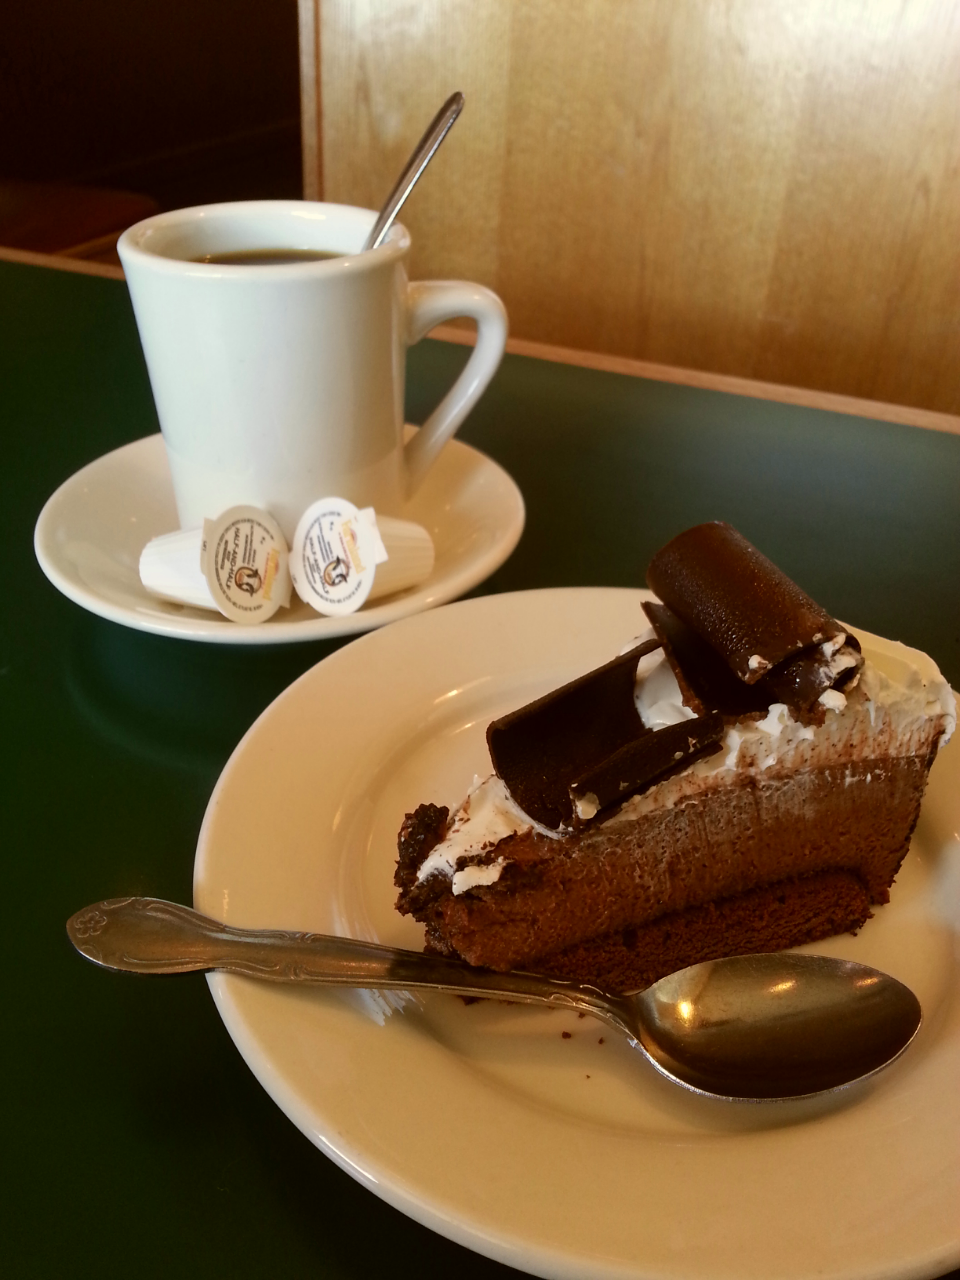 Copy of Copy of Copy of Chocolate Mousse Cake and Coffee!